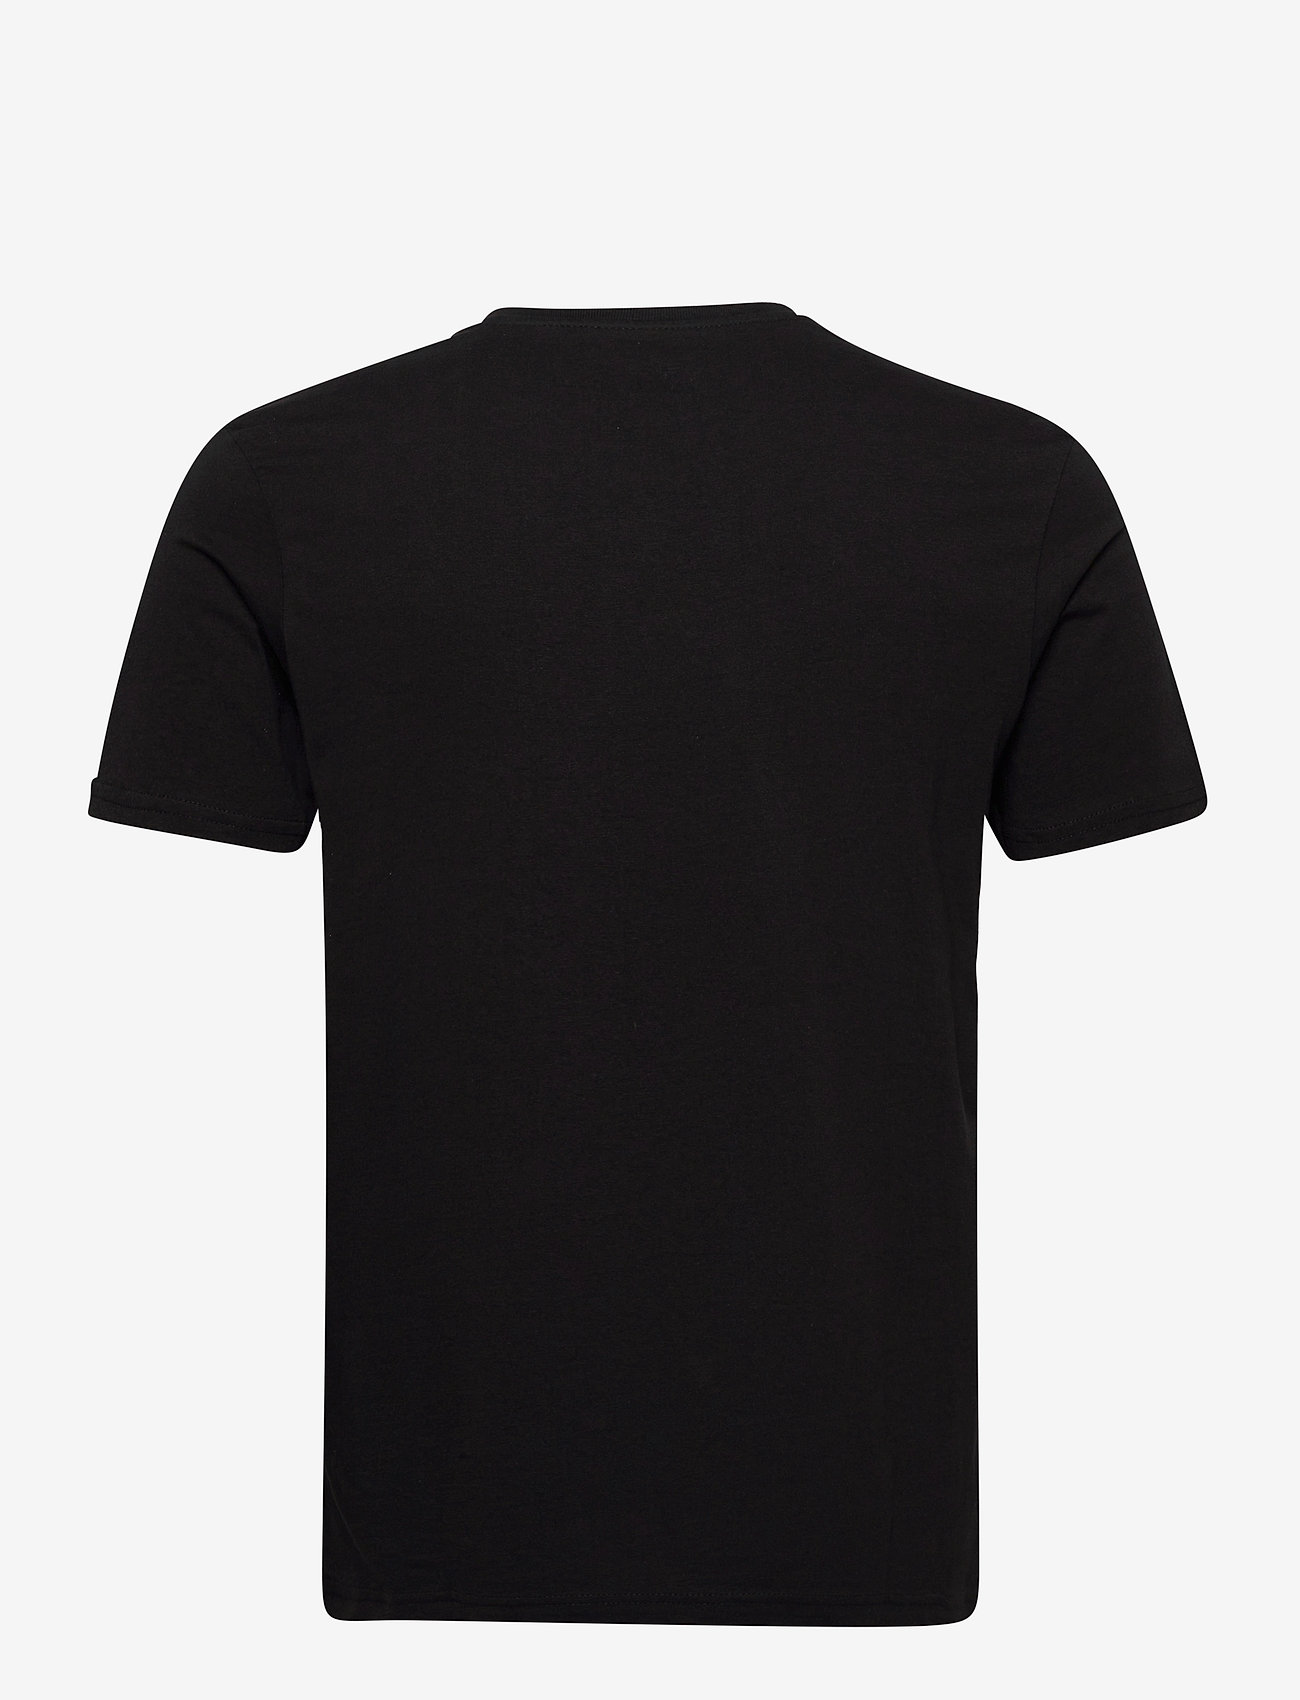 Alpha Industries Alpha Industries T - T-skjorter BLACK/WHITE - Menn Klær